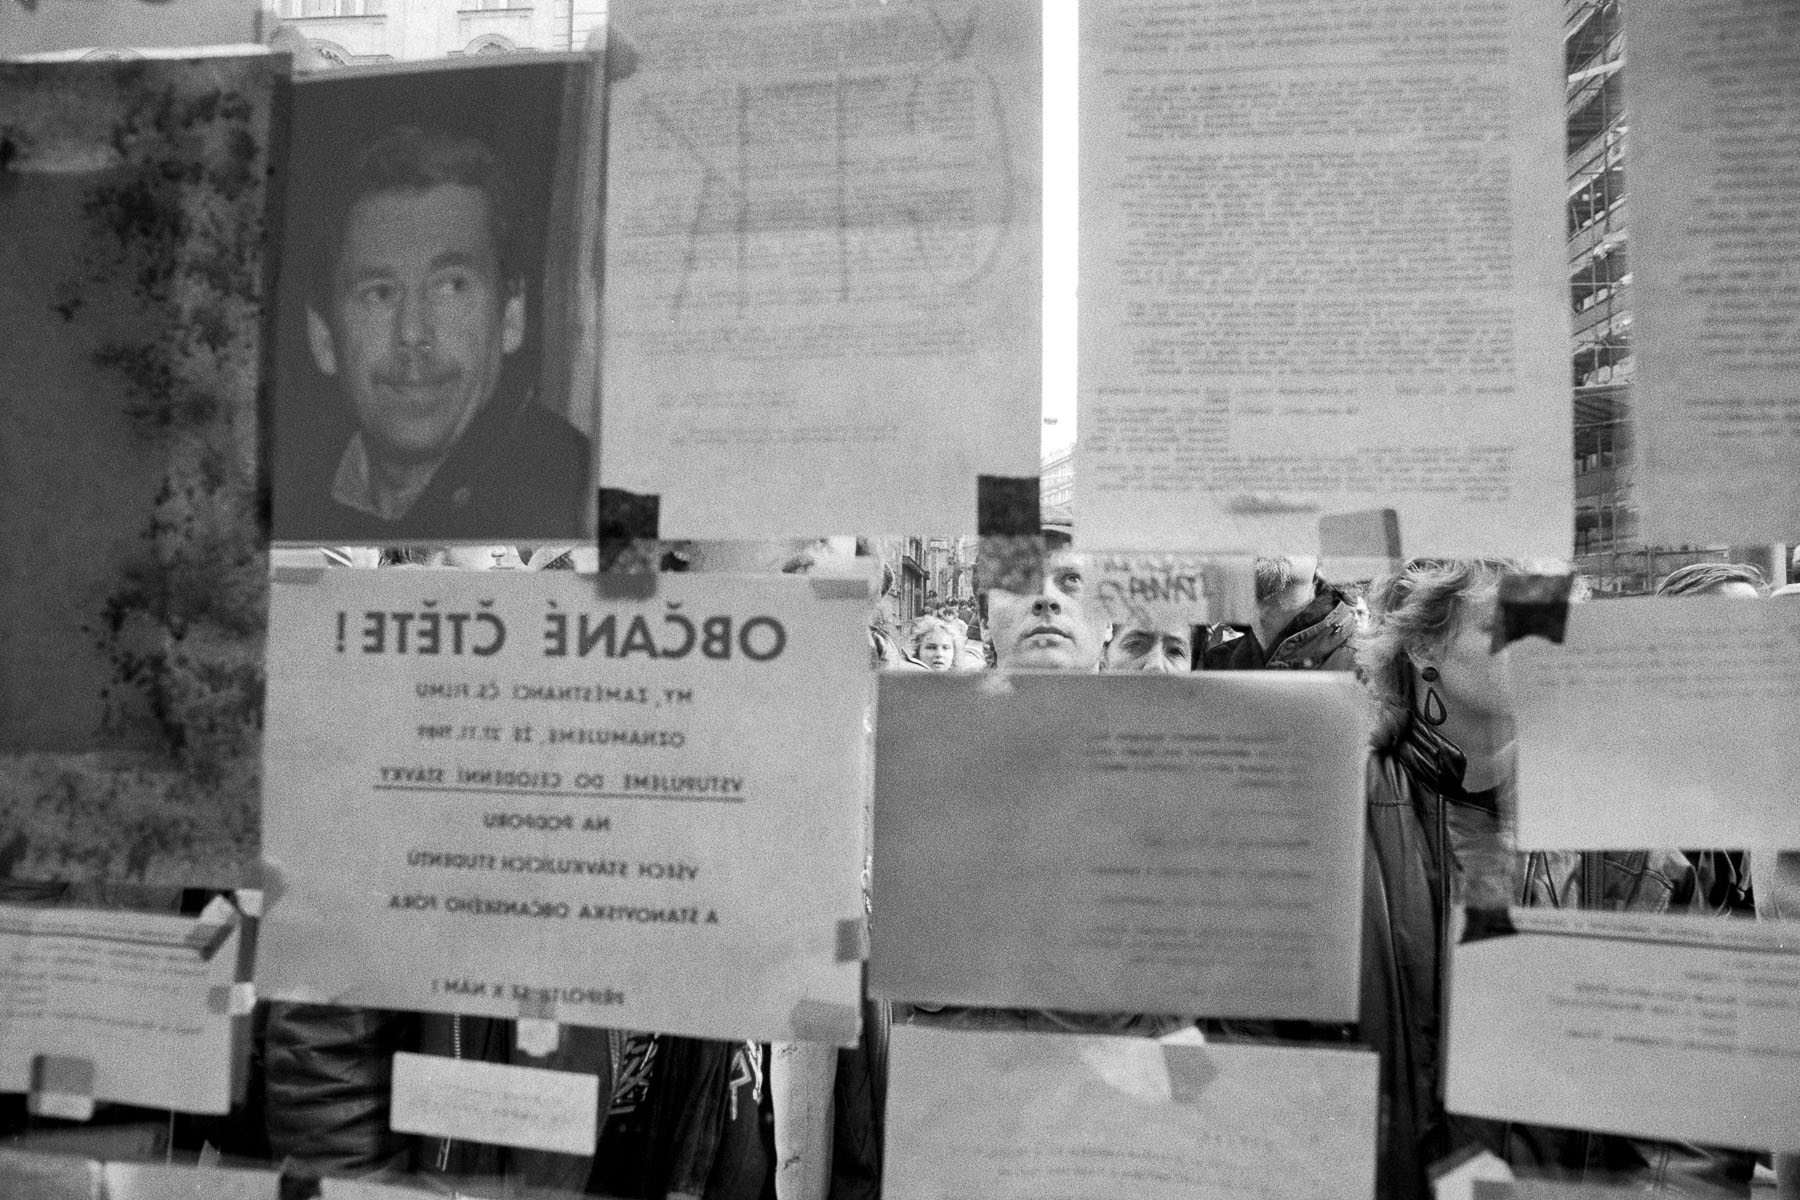 Protest slogans on the windows  of the university in November 1989